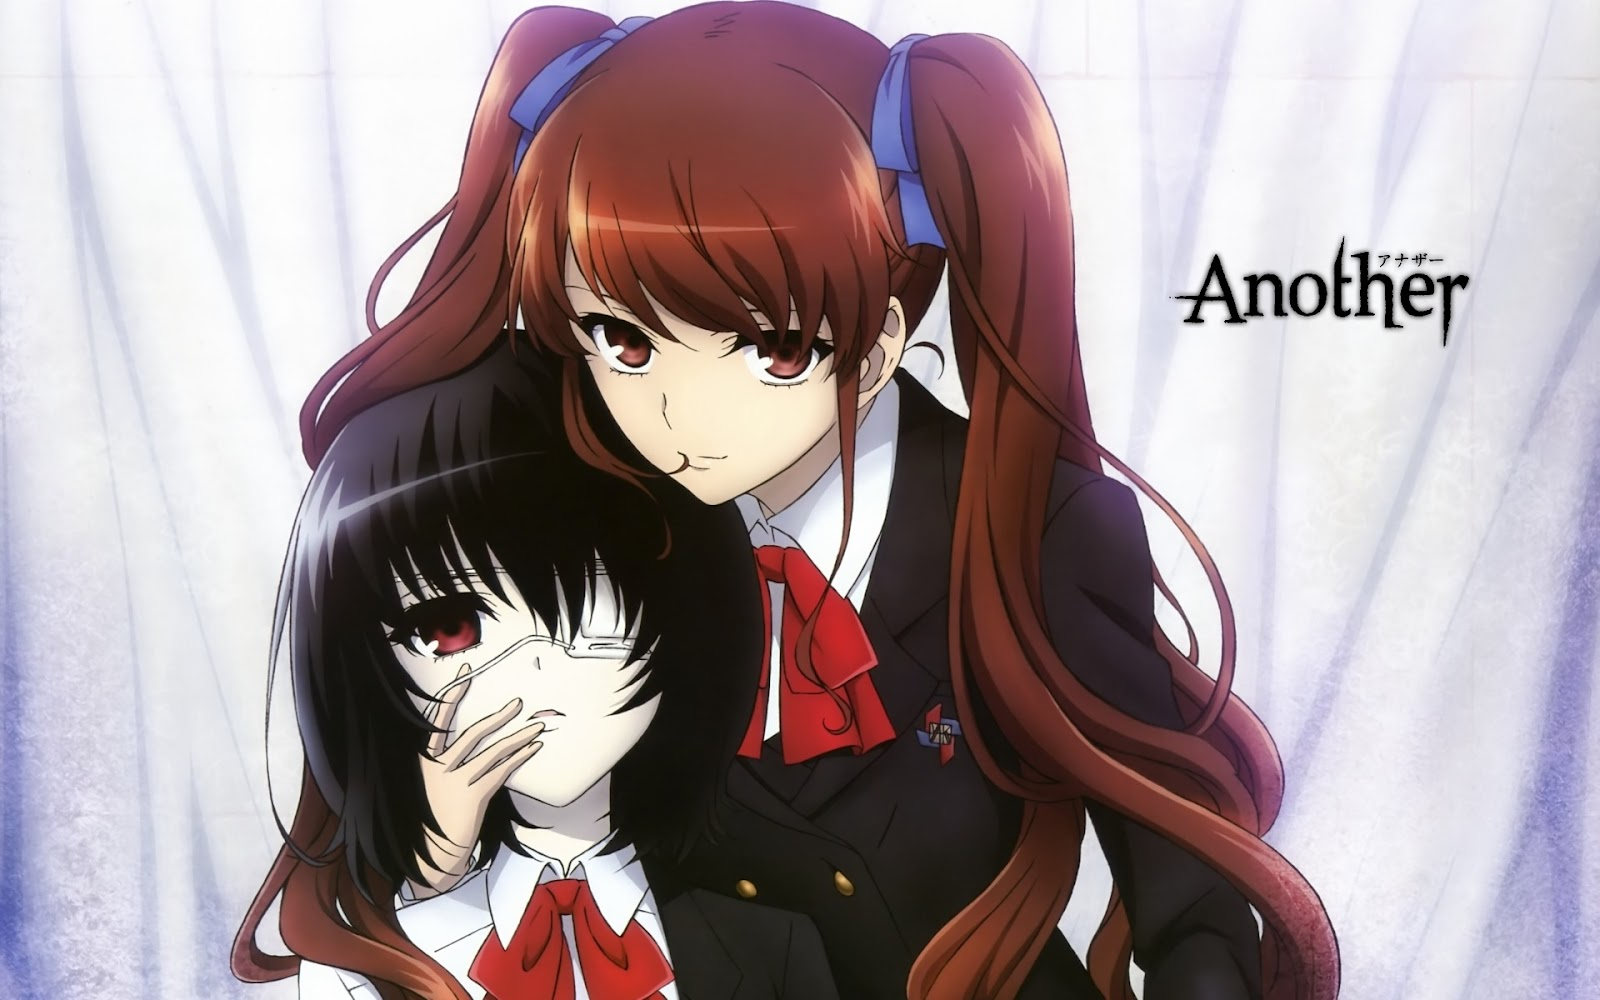 Amnesia Anime Wallpaper Forbidden Forest Another Anime Wallpaper アナザー壁紙